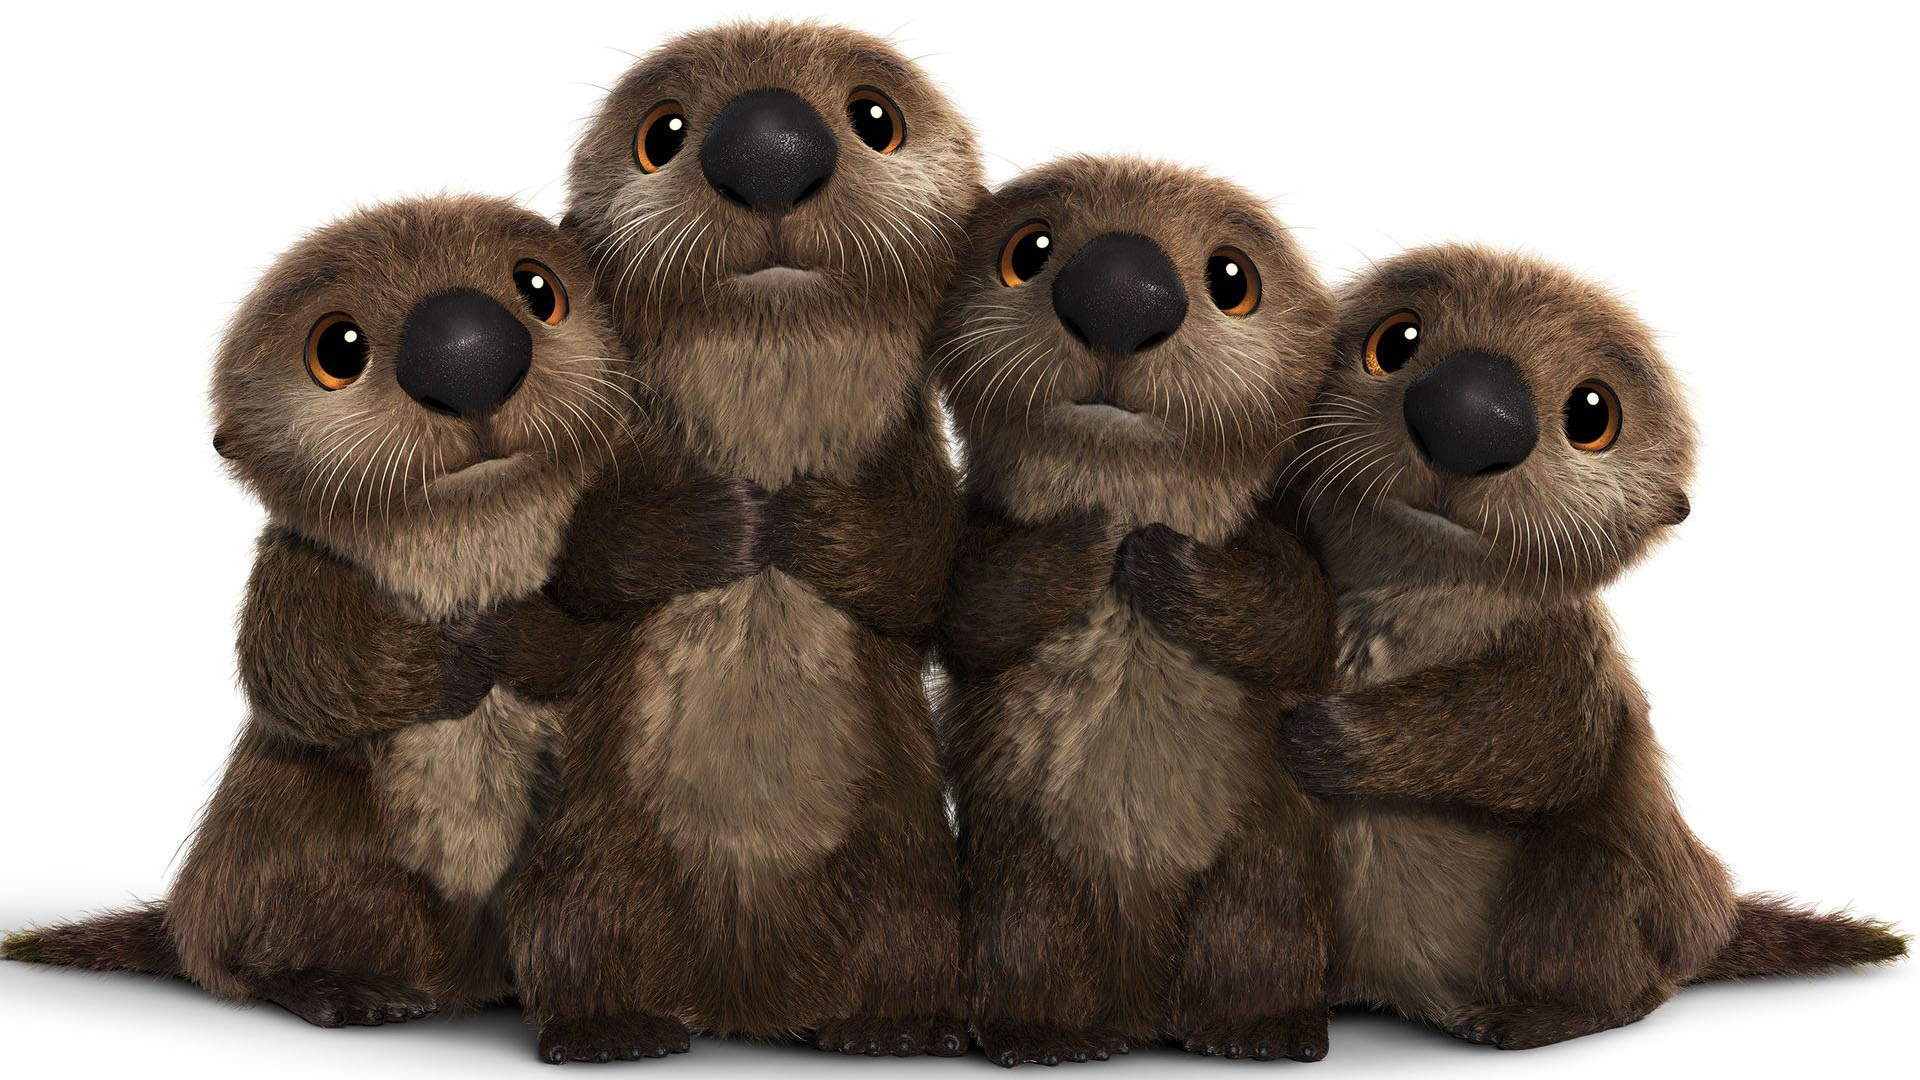 Finding Dory Otters Wallpapers 1920x1080 596355